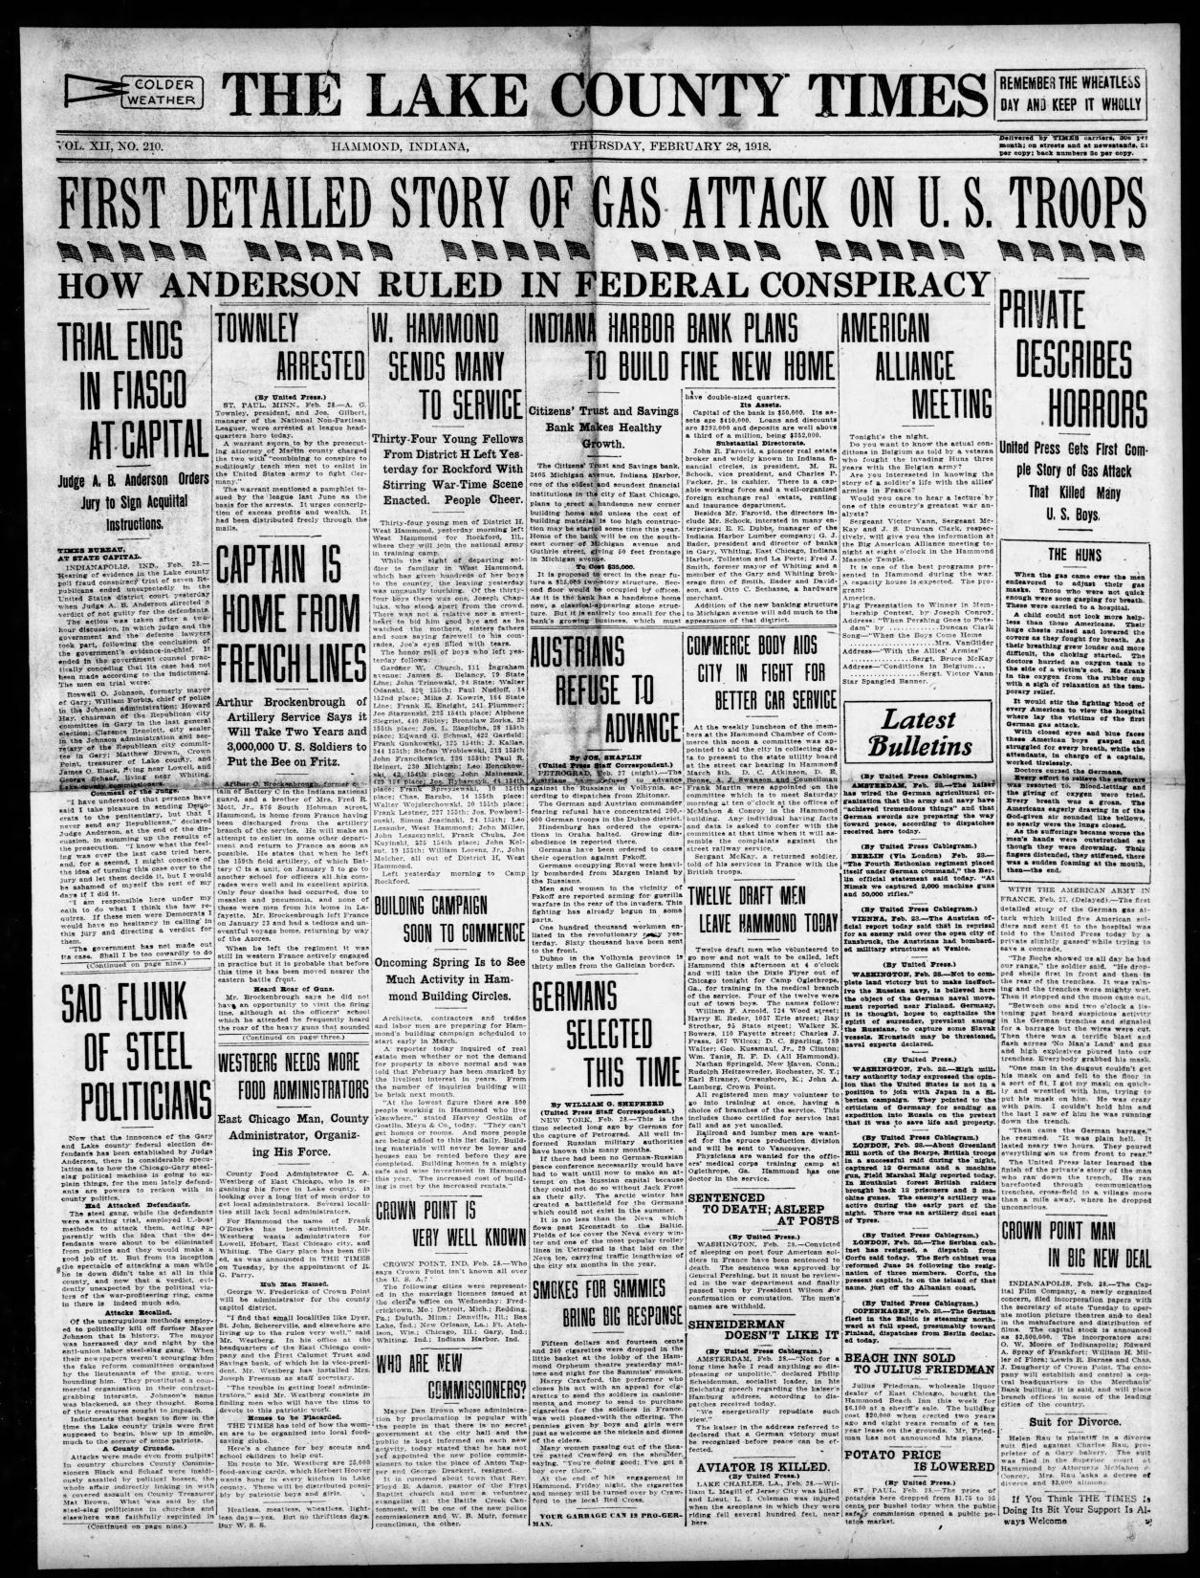 Feb. 28, 1918: First Detailed Story of Gas Attack on U.S. Troops